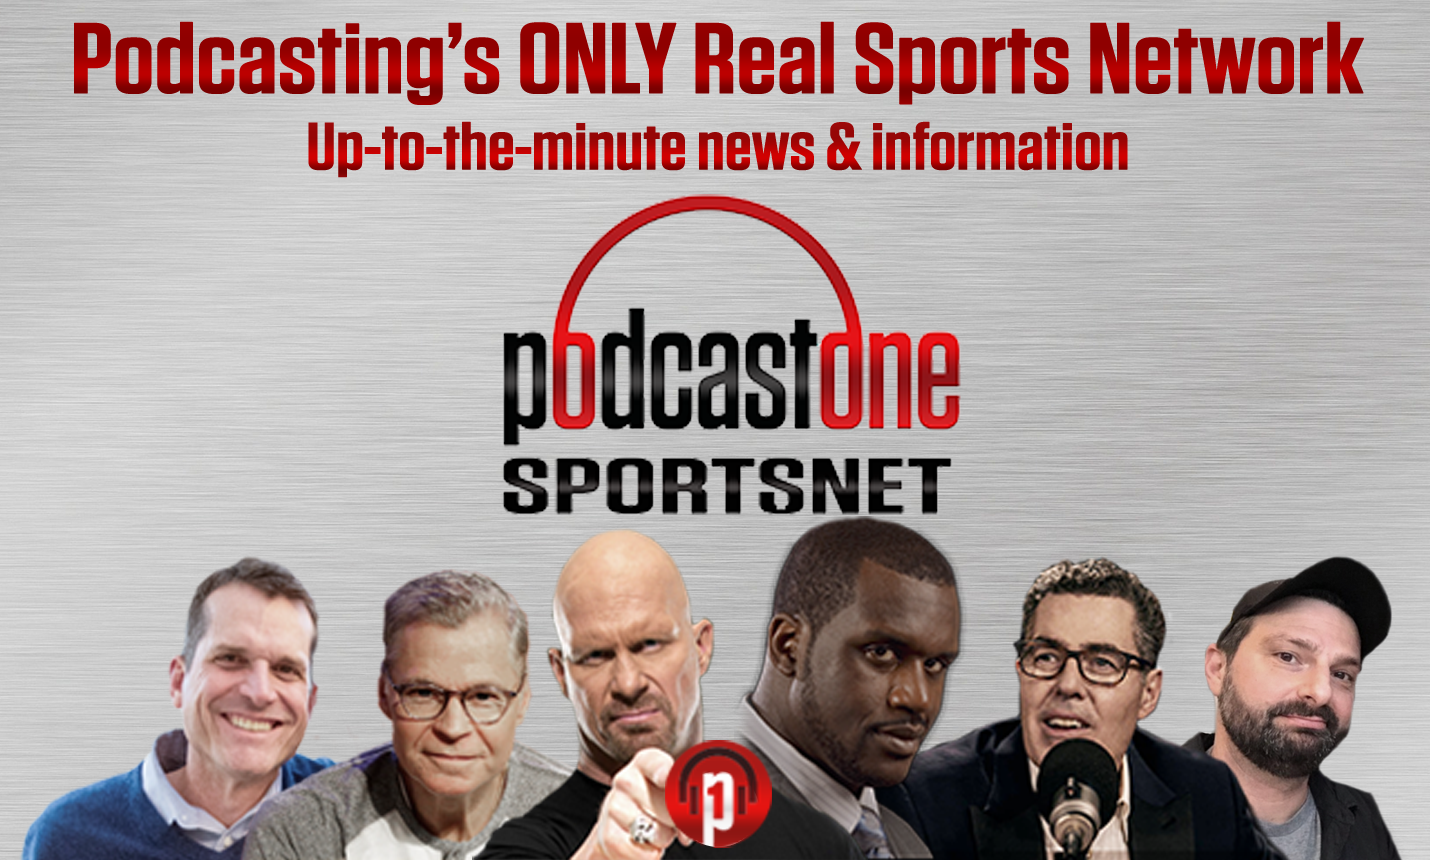 PodcastOne SportsNet